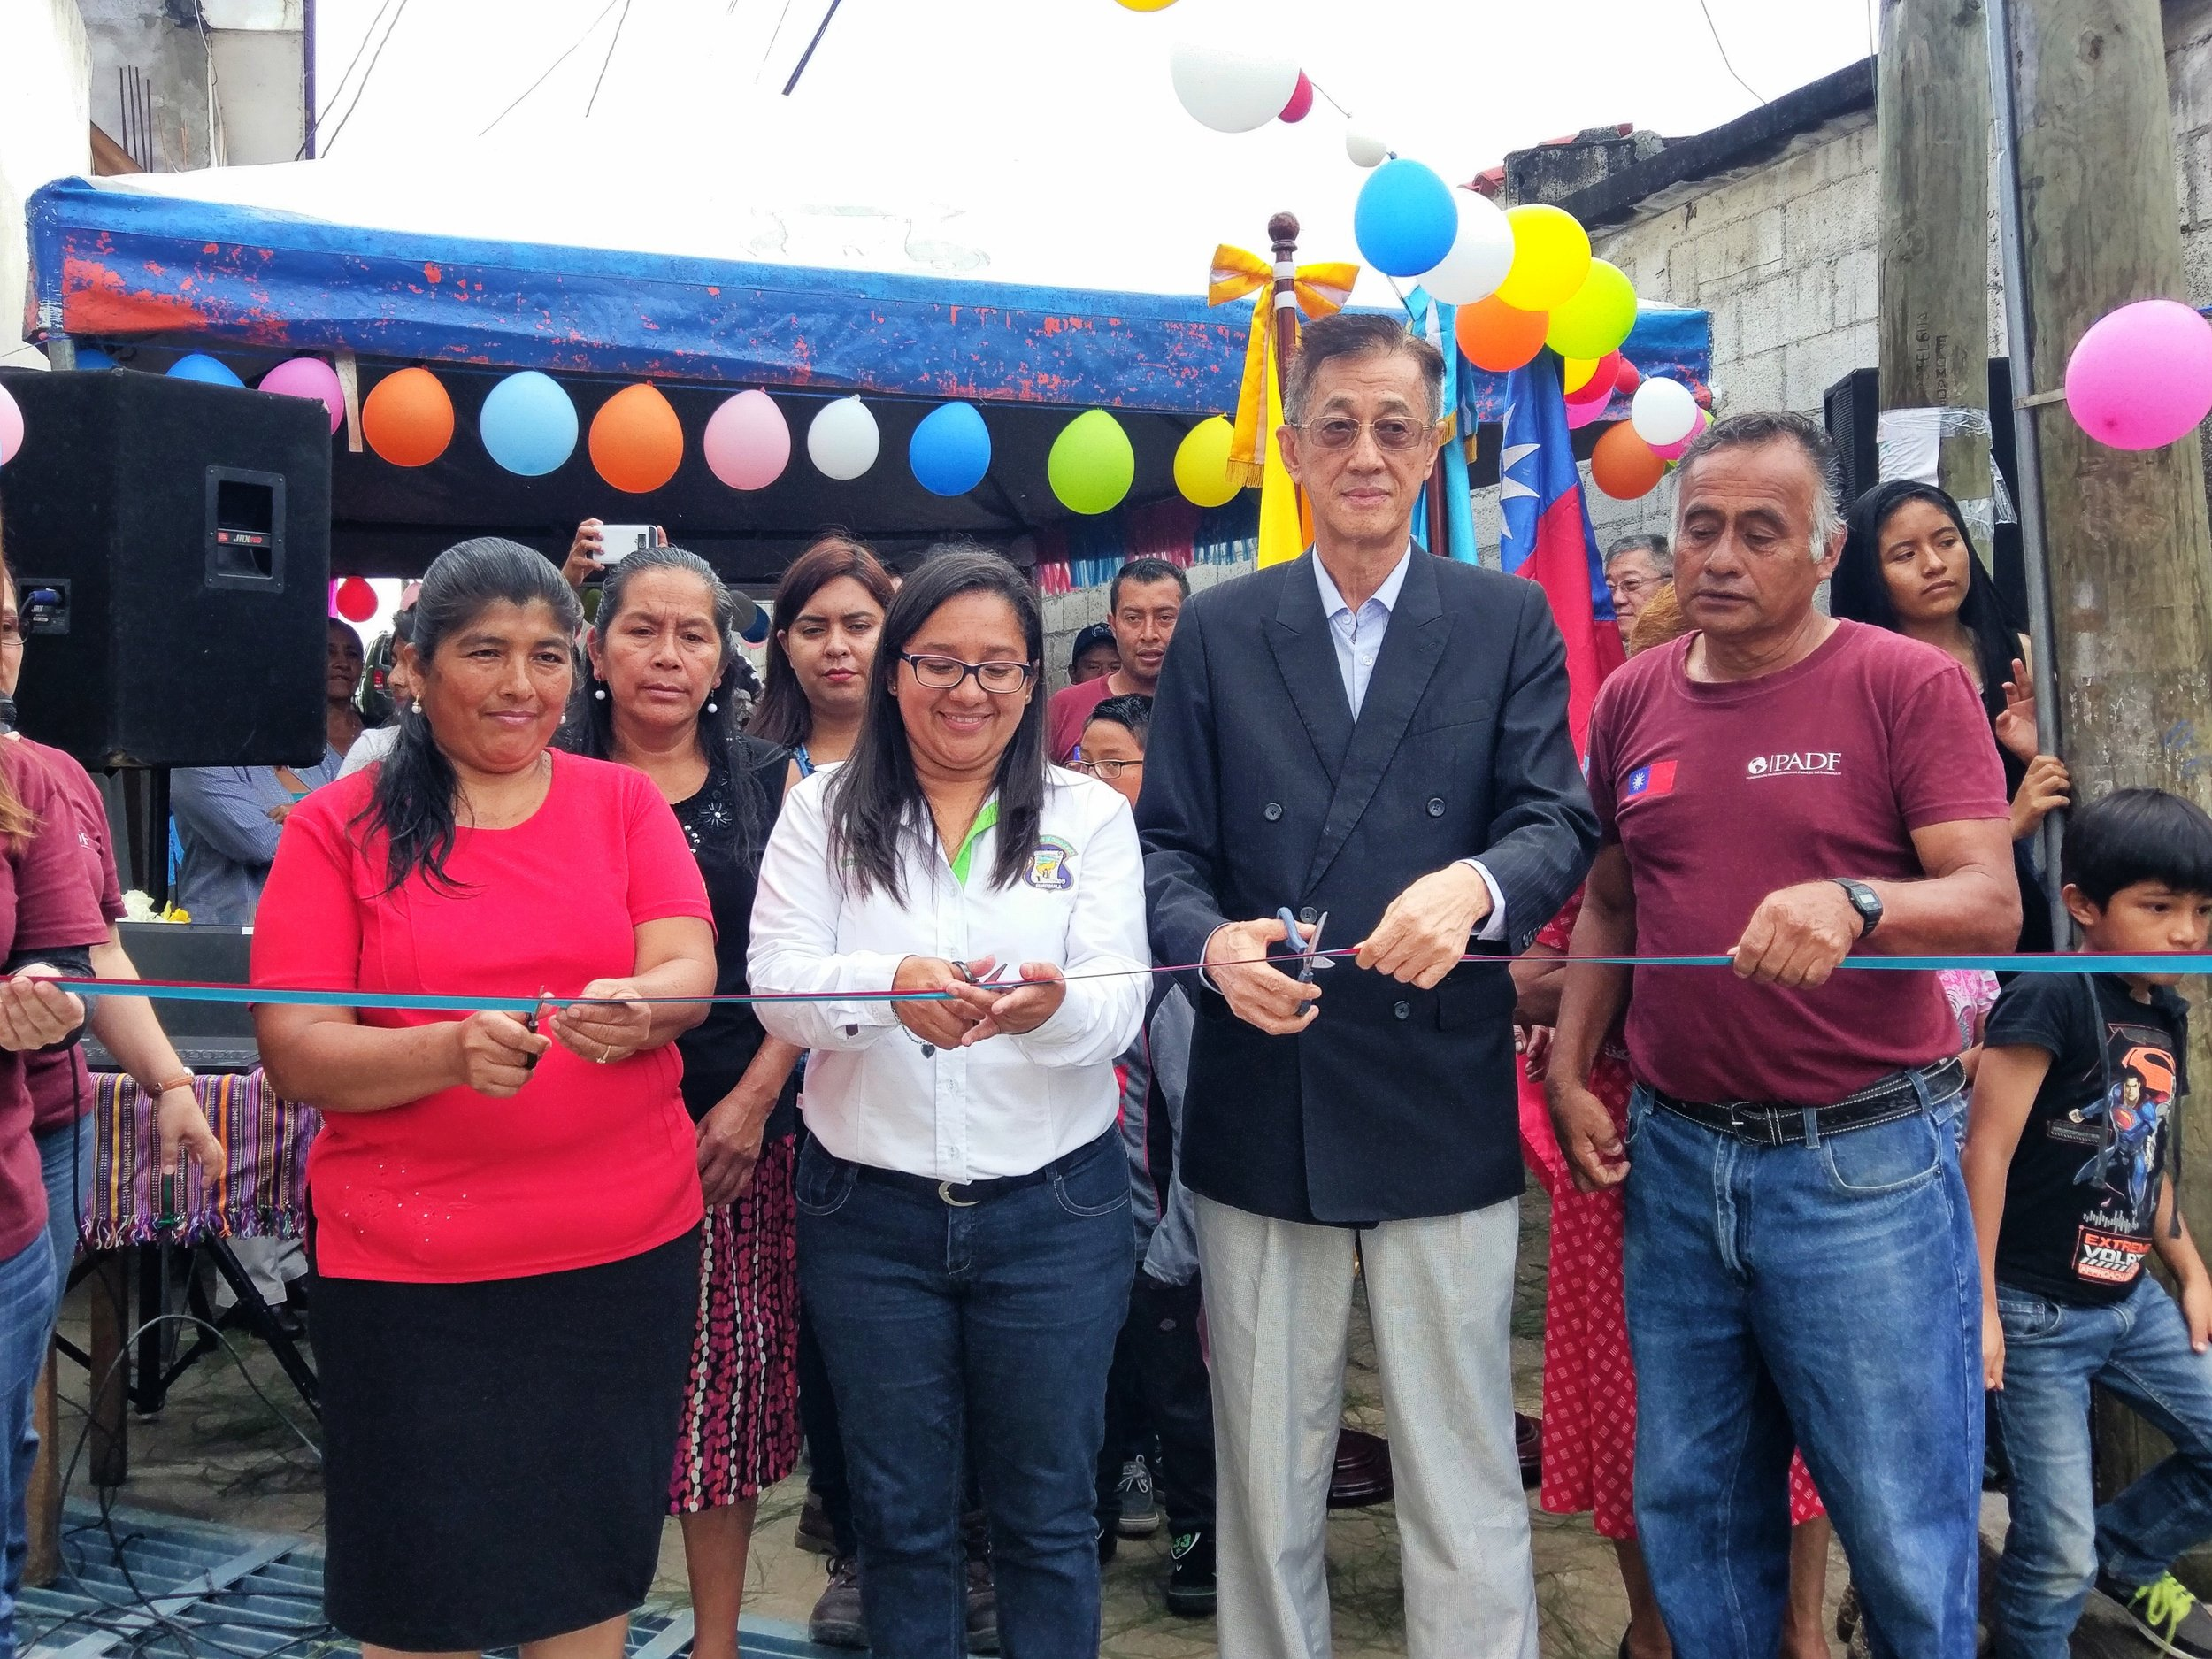 John Lai, Taiwanese Ambassador to Guatemala, celebrates with local leaders and PADF at the ribbon cutting ceremony on September 23.